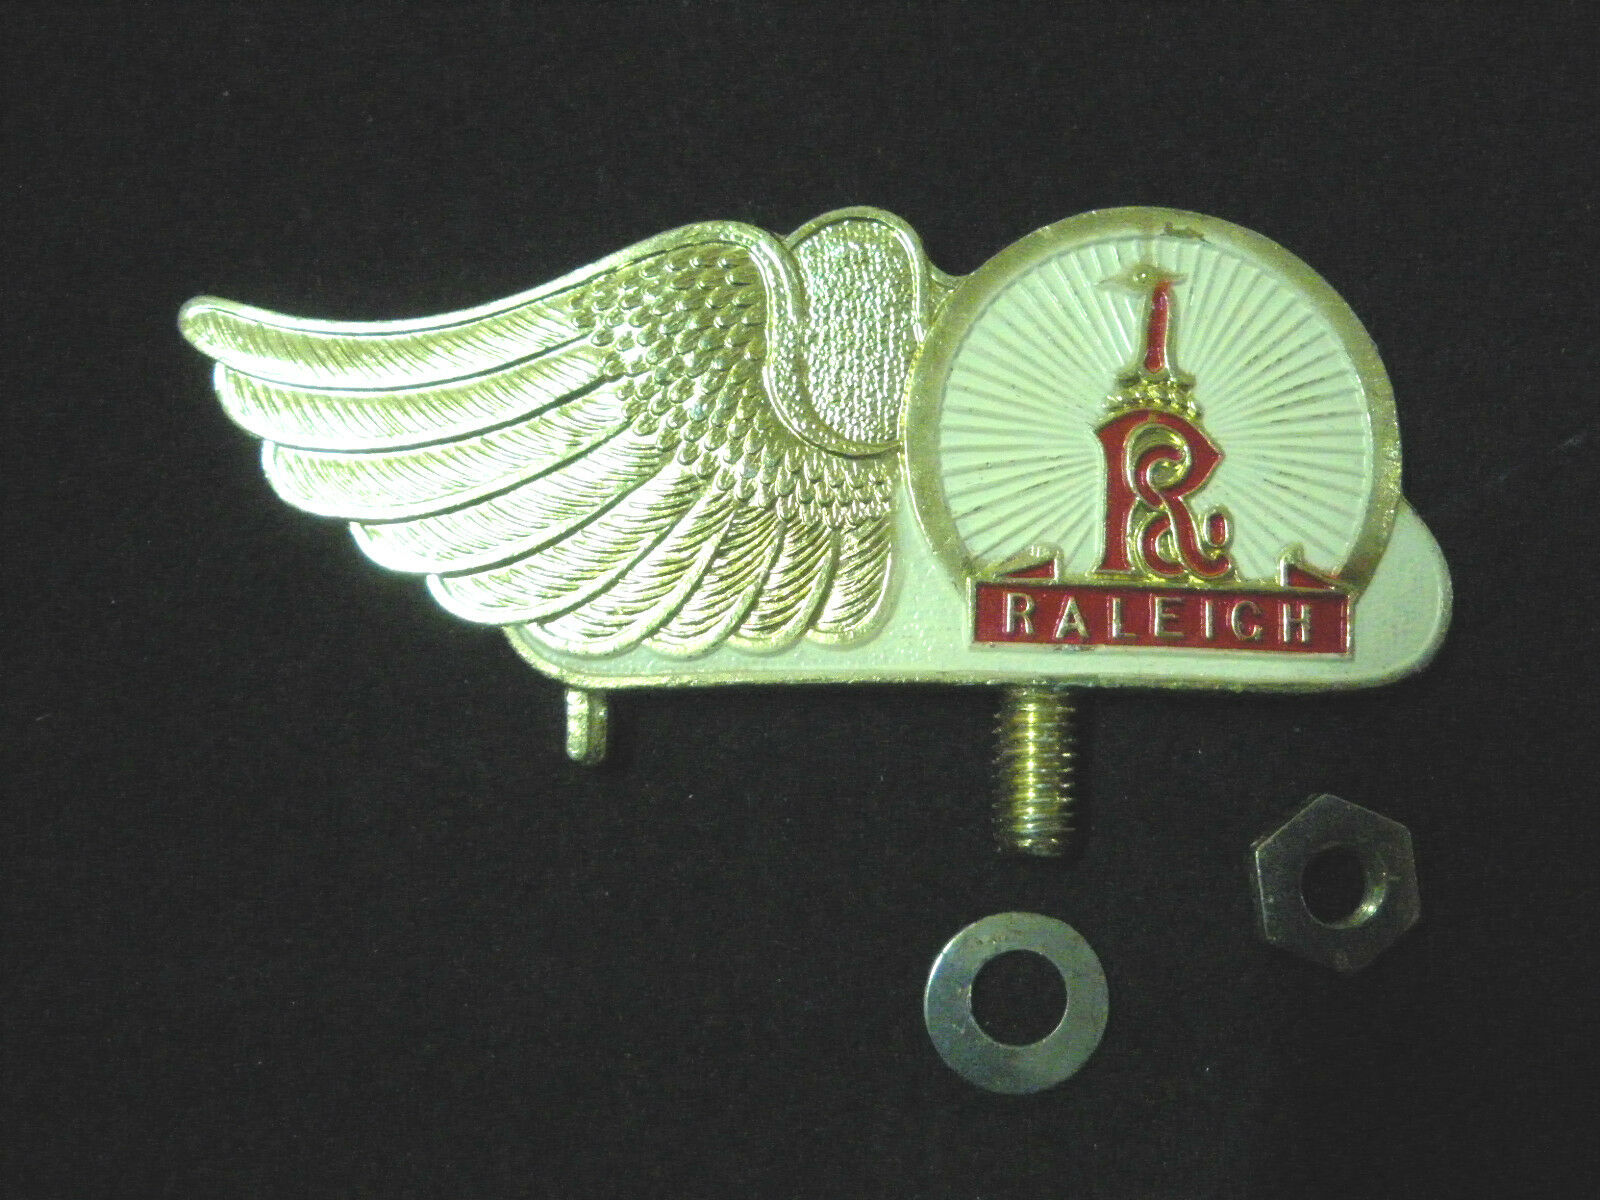 Vintage RALEIGH  Bicycle  front mudguard Emblem Badge Bike gold WHITE NOS 1950s  hottest new styles